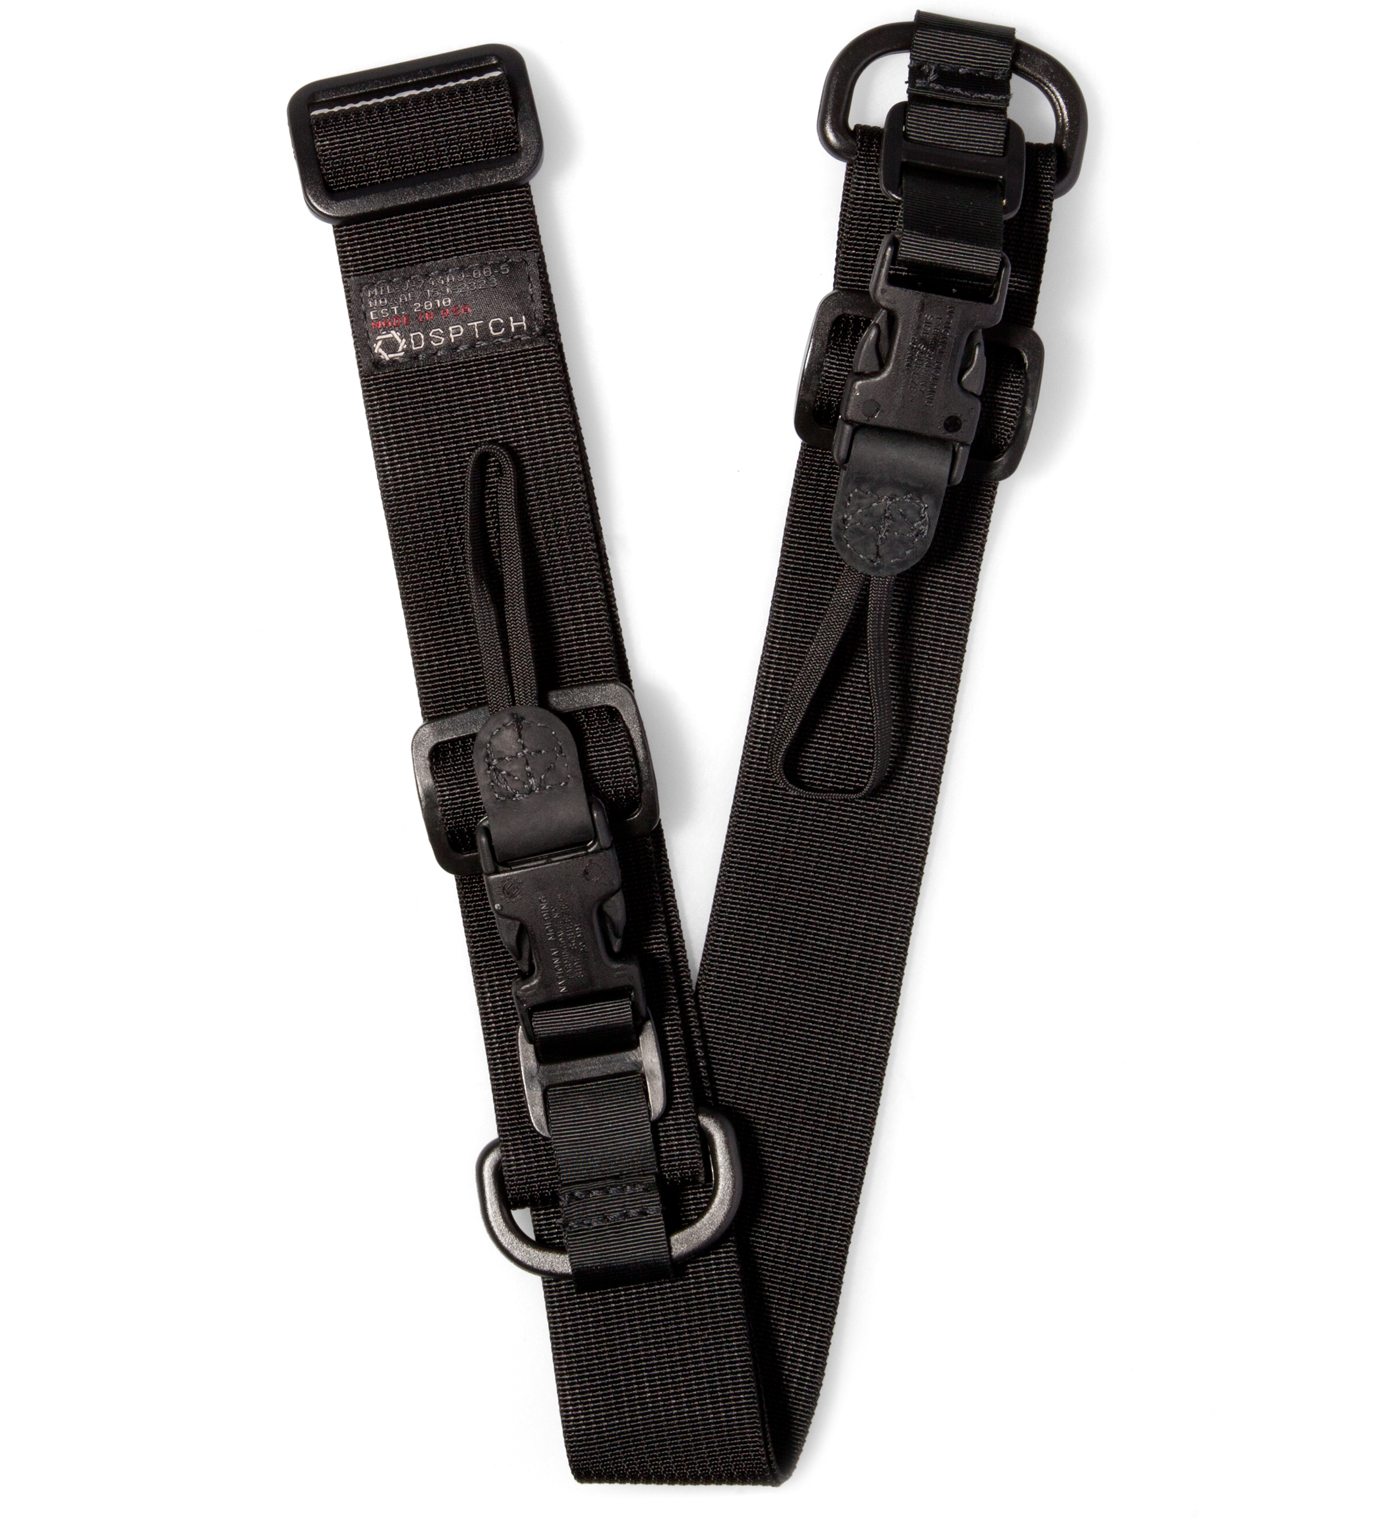 DSPTCH Black Heavy Camera Sling Strap